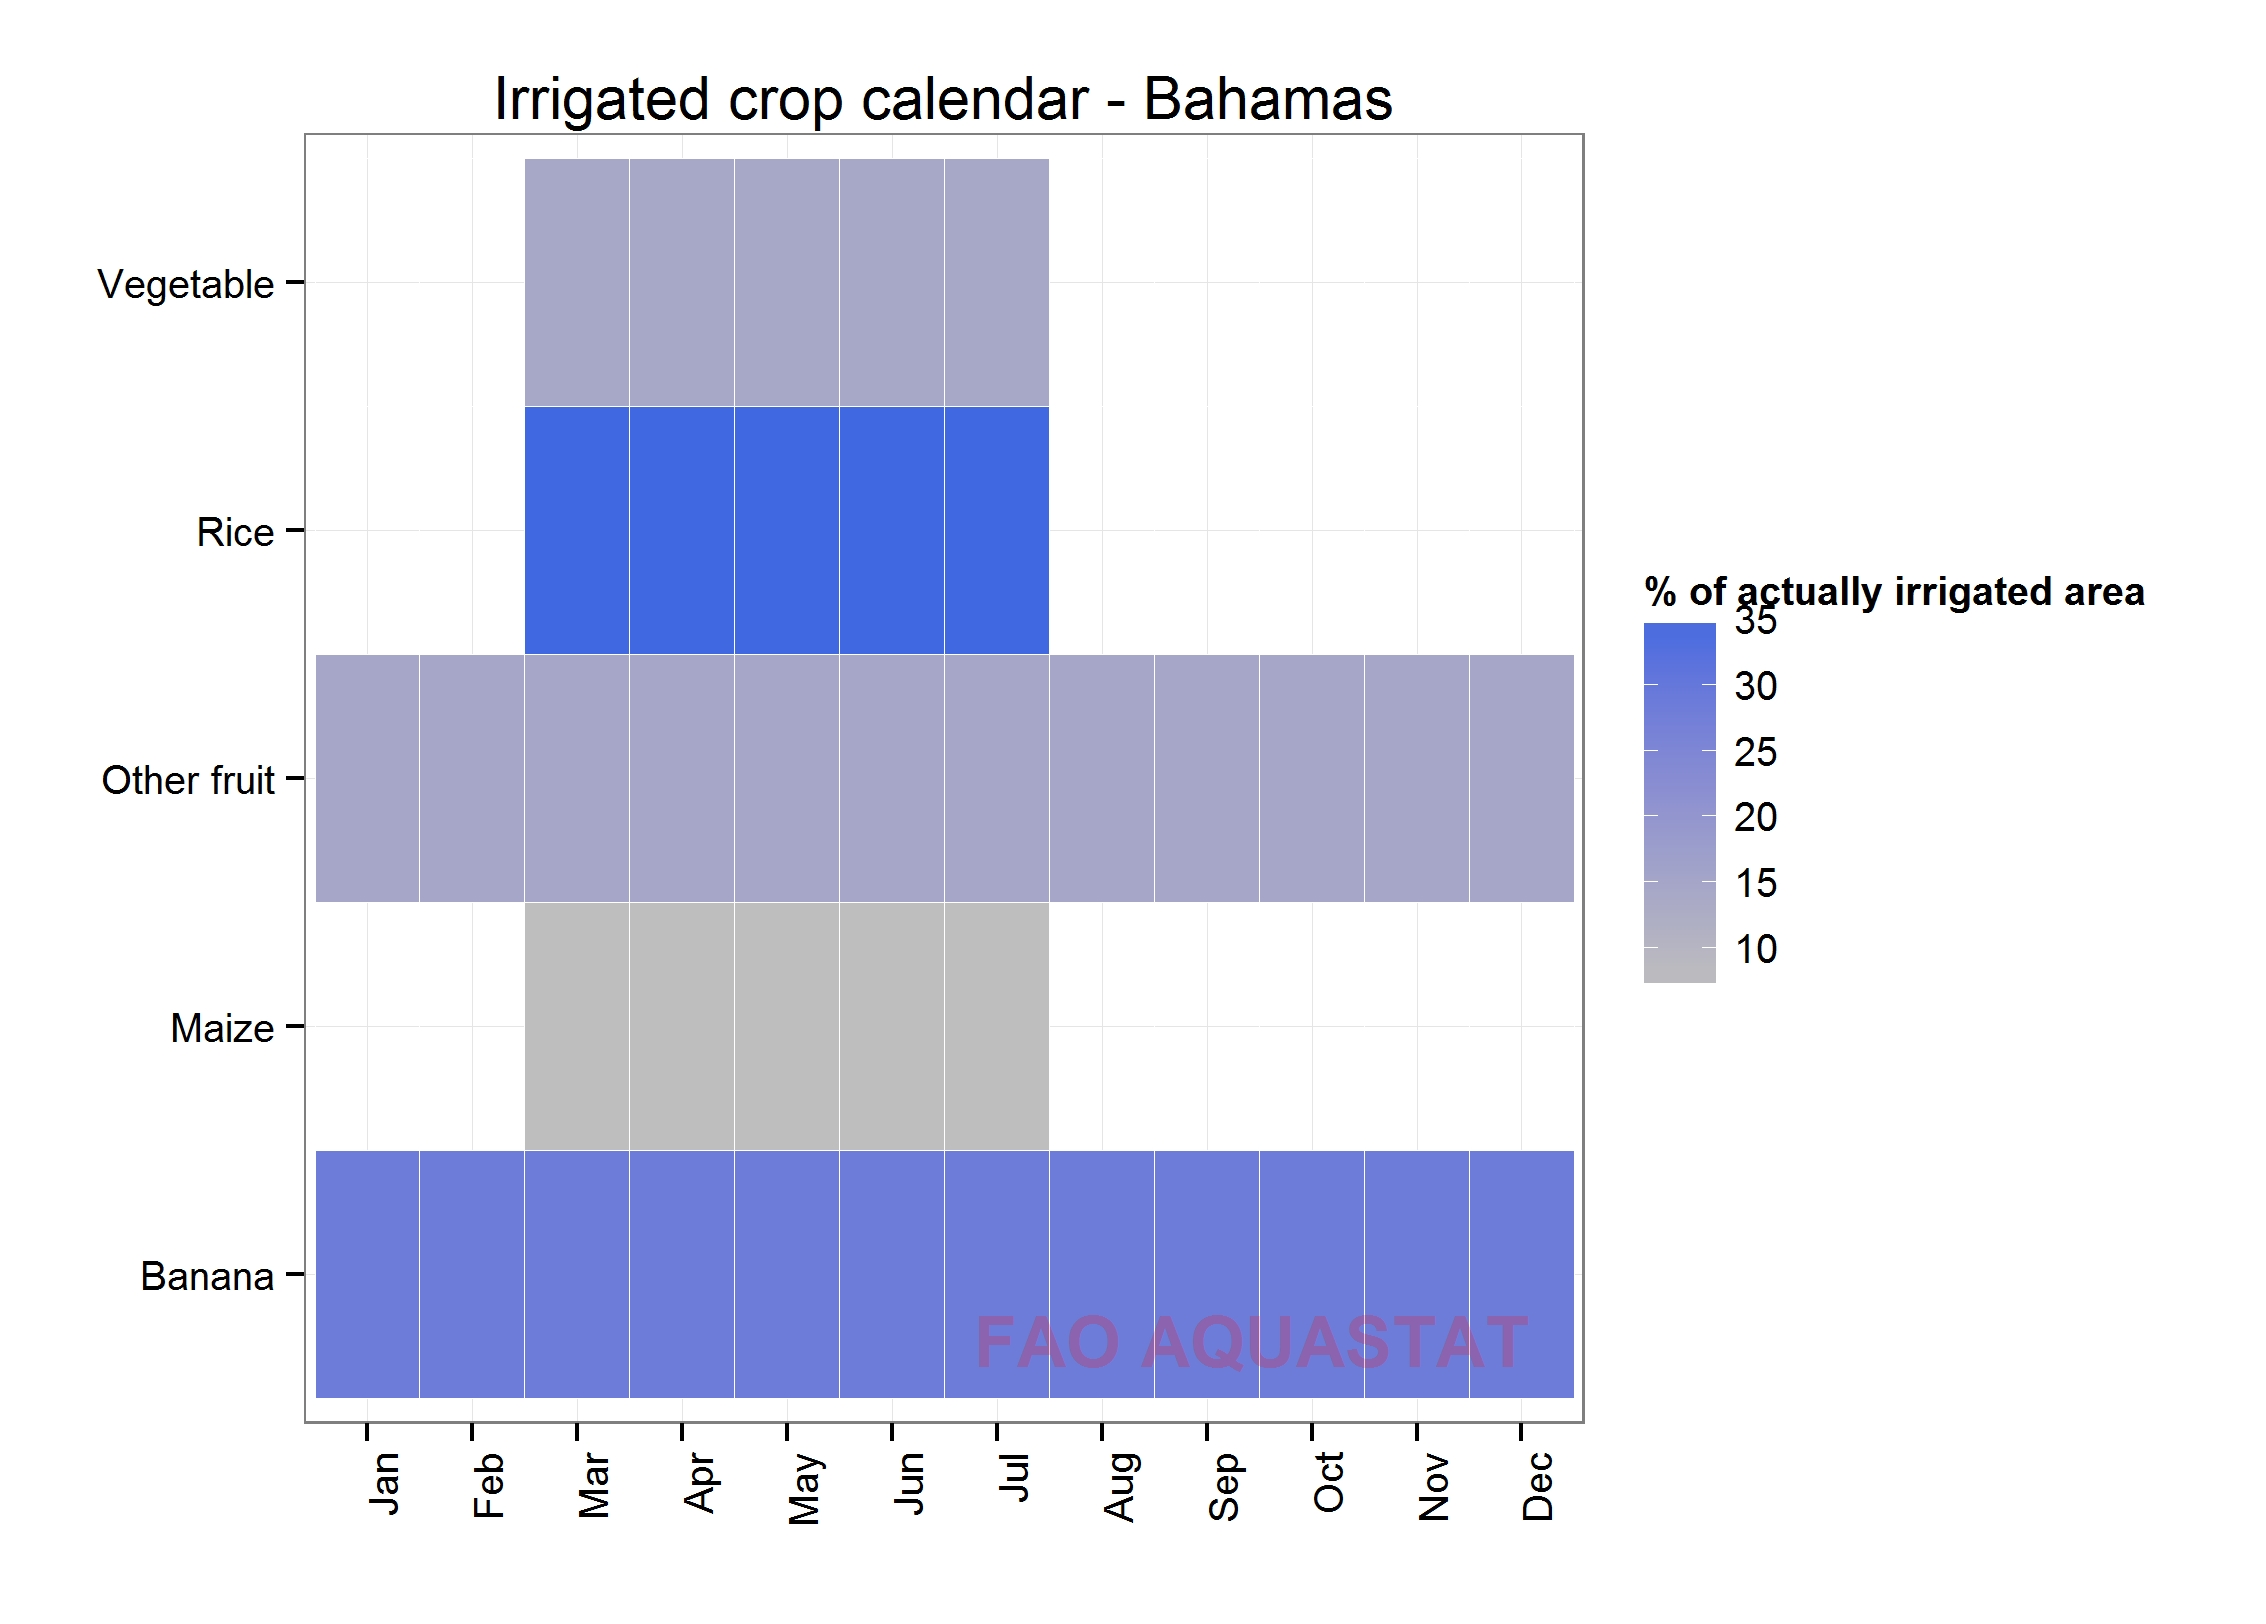 Aquastat - Fao's Information System On Water And Agriculture inside Crop Calender Of Sri Lanka